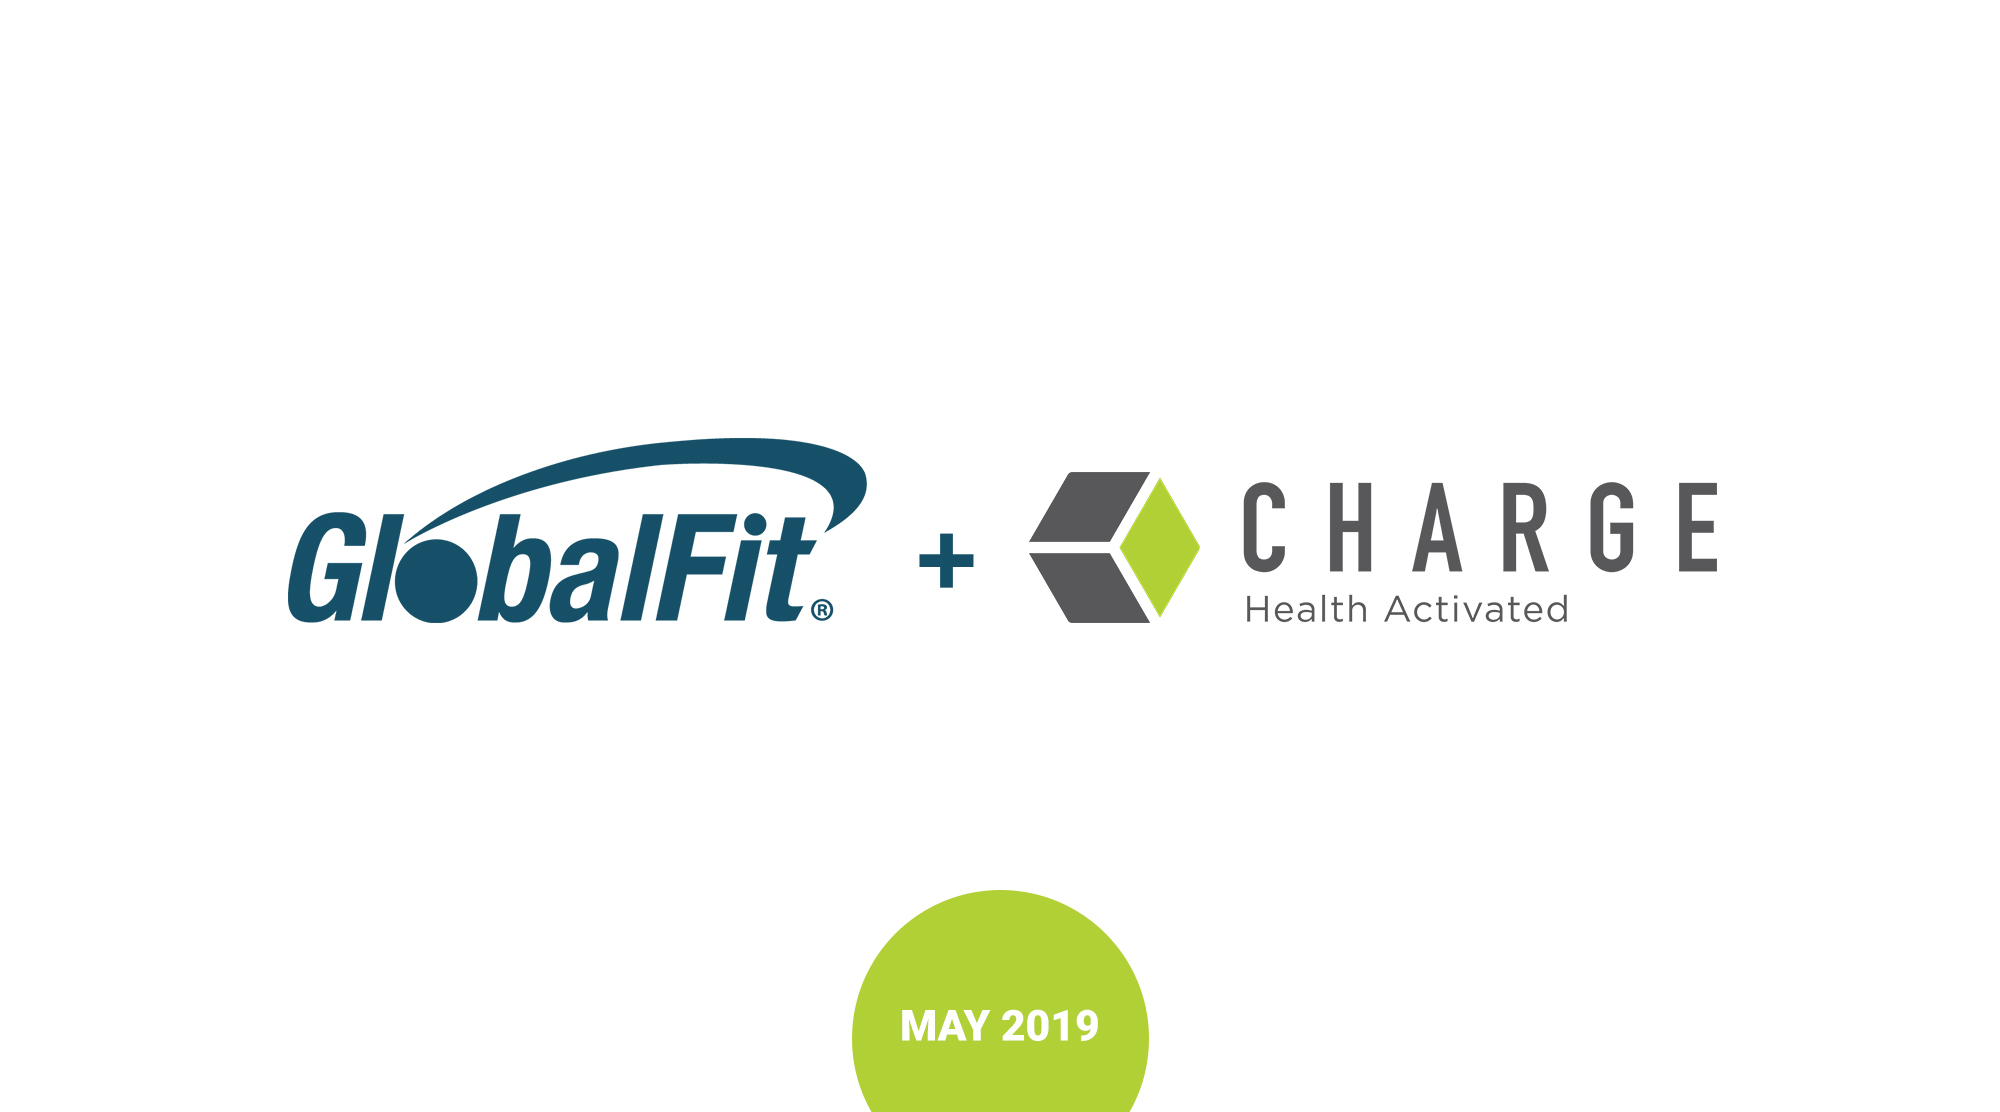 GlobalFit and CHARGE acquisition photo.